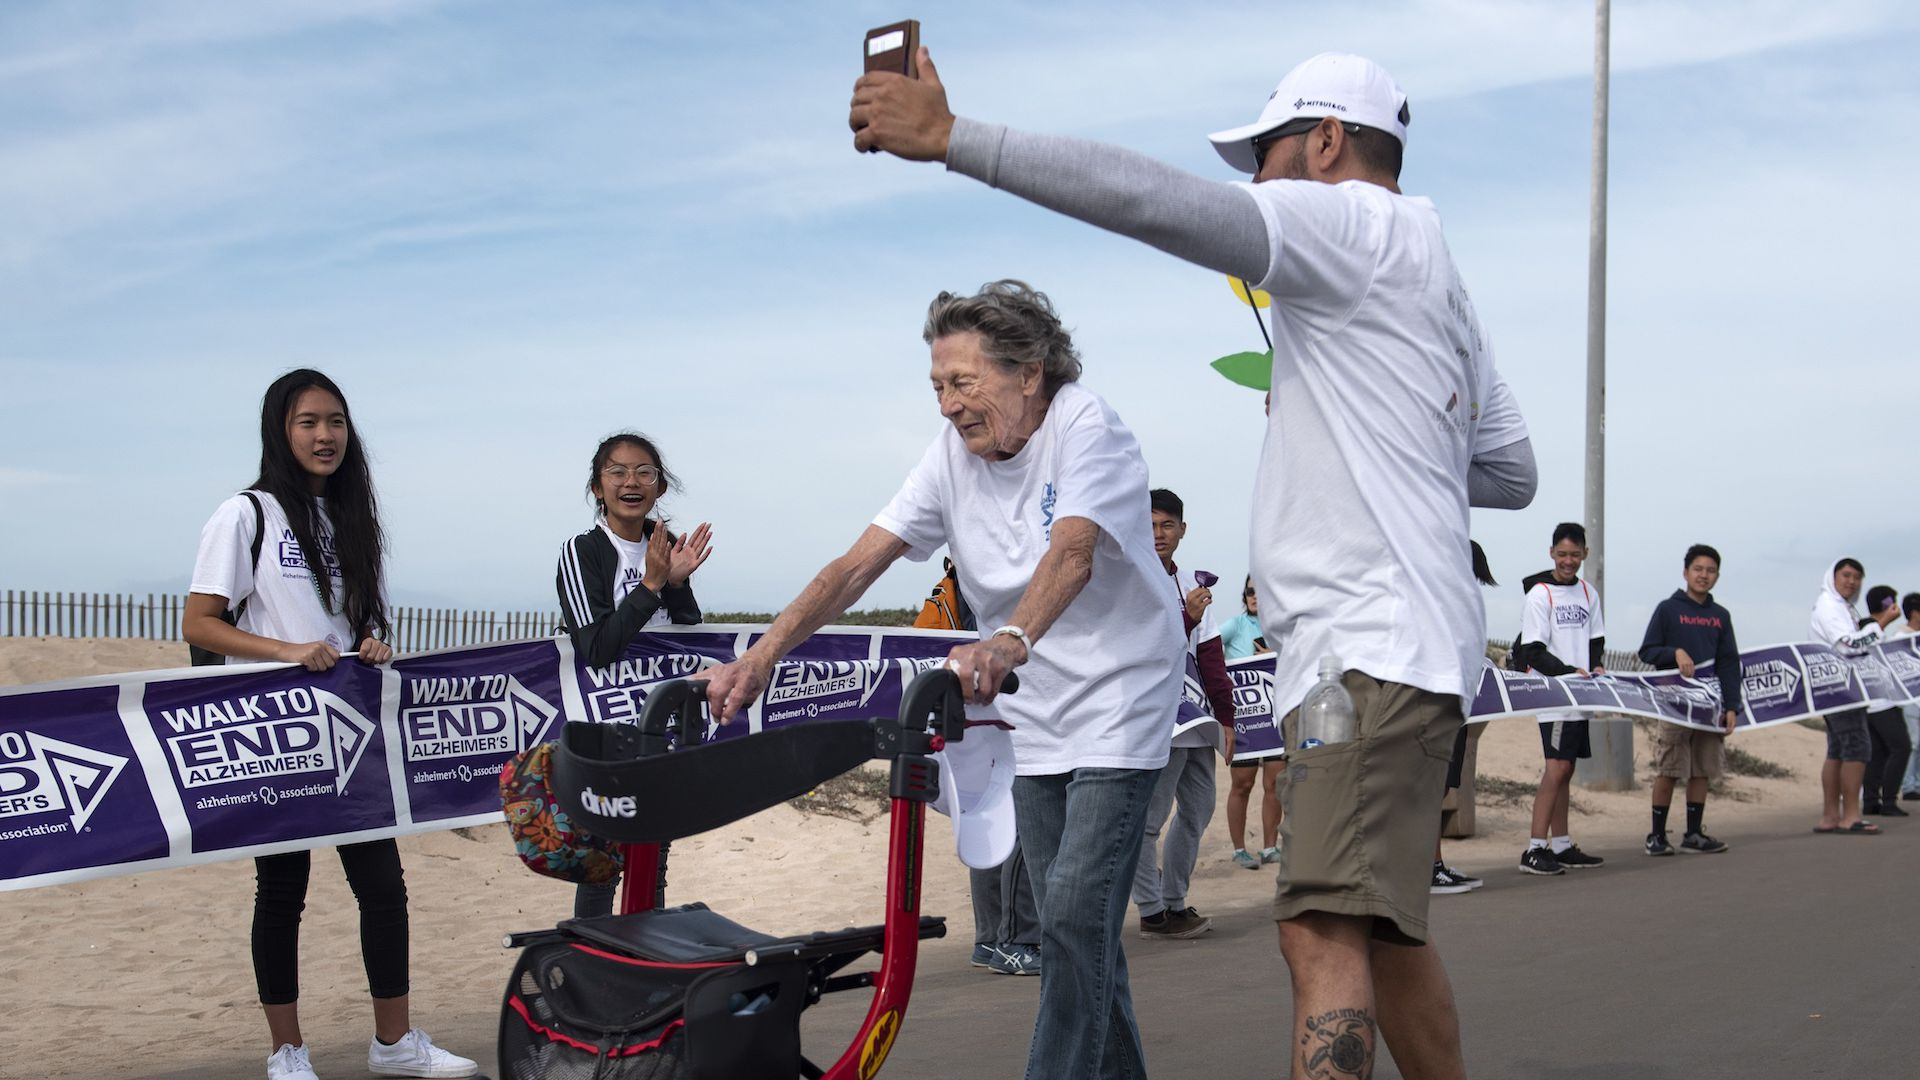 A man records the 2-mile Walk to End Alzheimer's finish in Huntington Beach on Saturday, October 6, 2018.